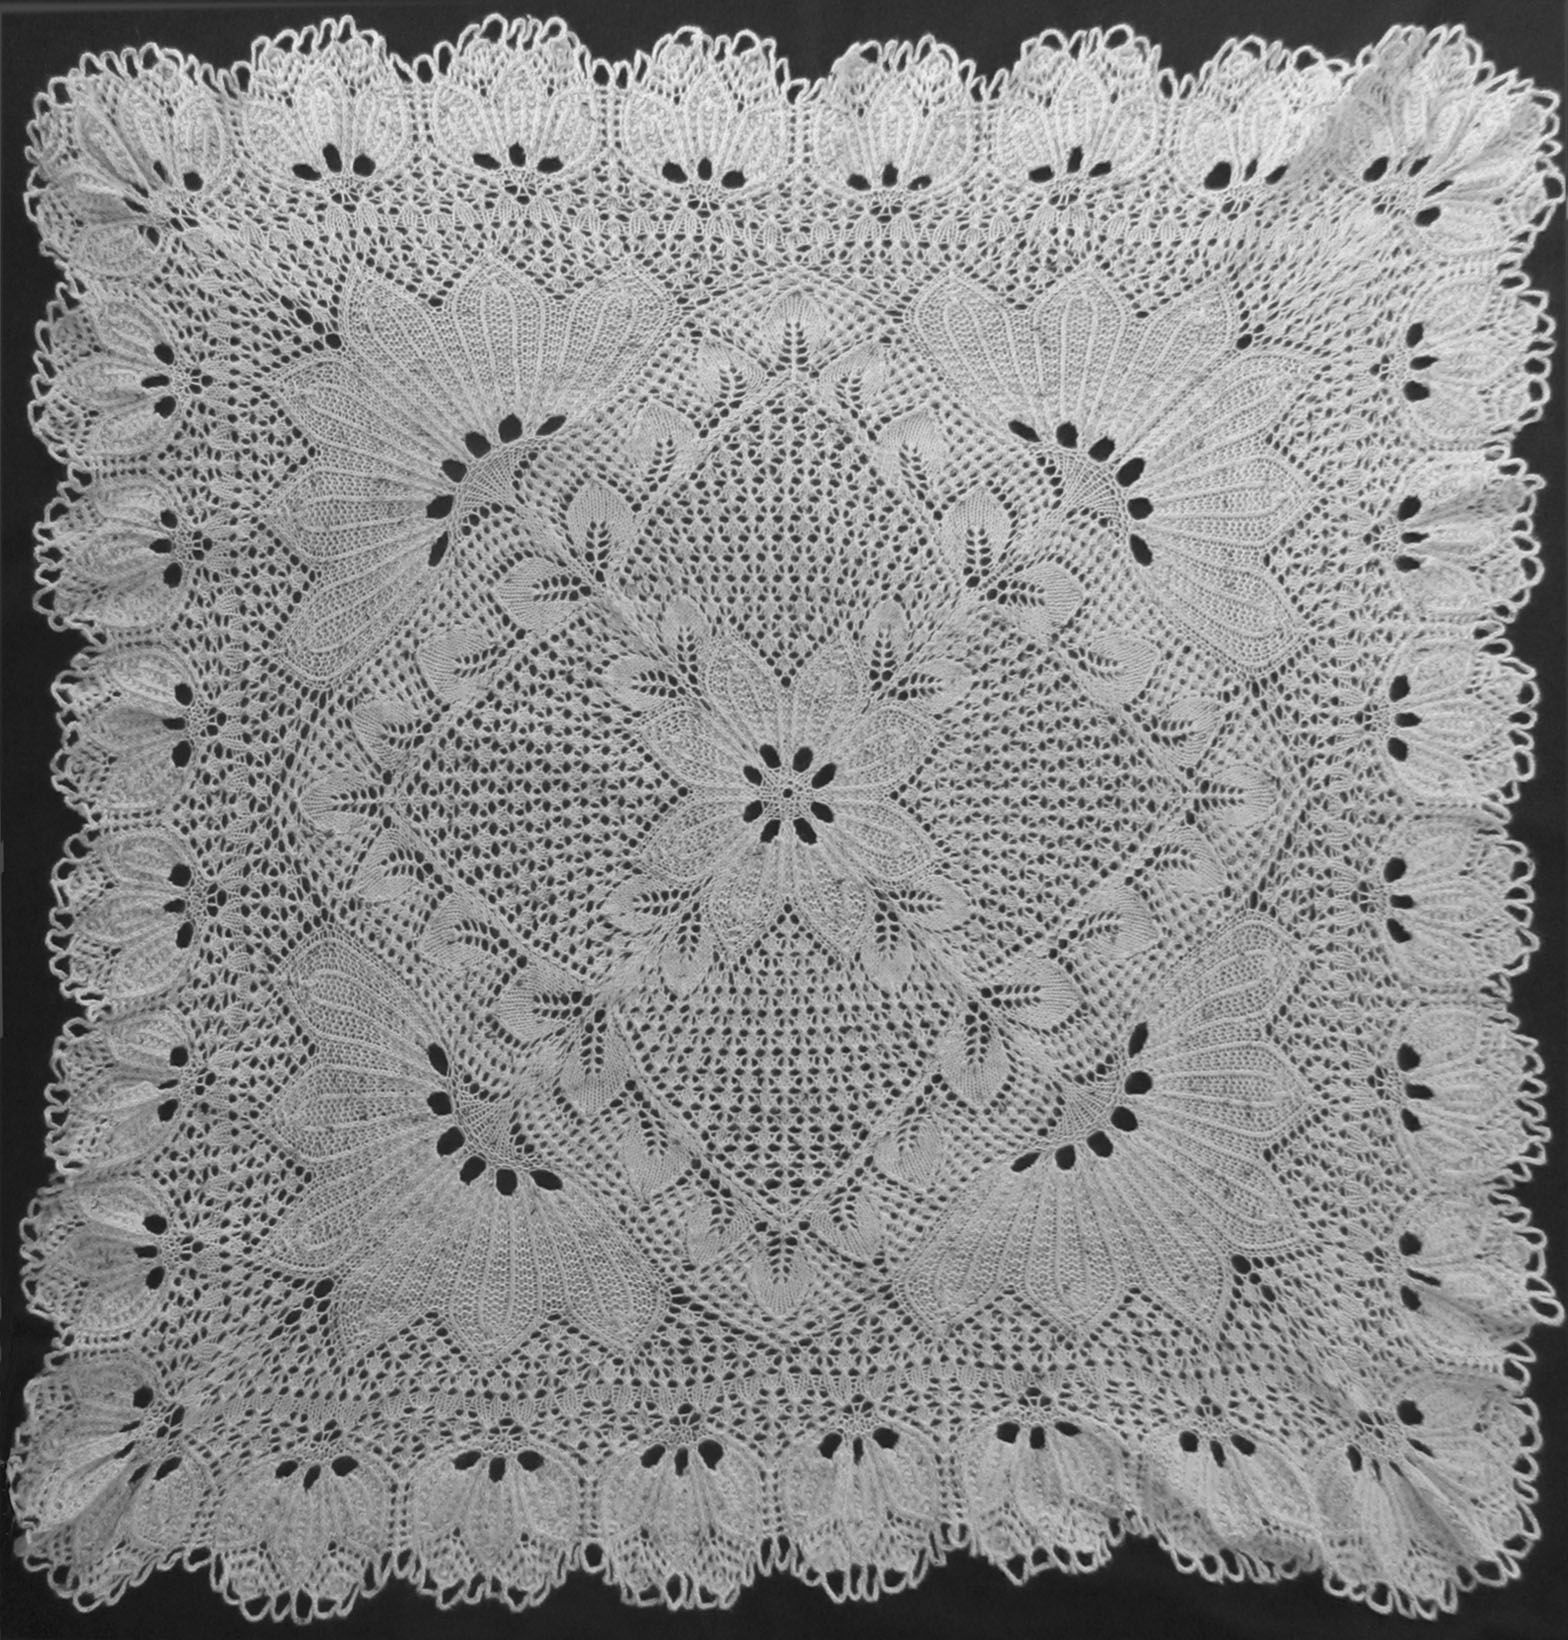 Quadratische decke 4 newg 15681640 pixel knitting square doily in knitted lace designed by herbert niebling design in above photo knitted as shawl by osnat masok pdf content english translation instruction bankloansurffo Images